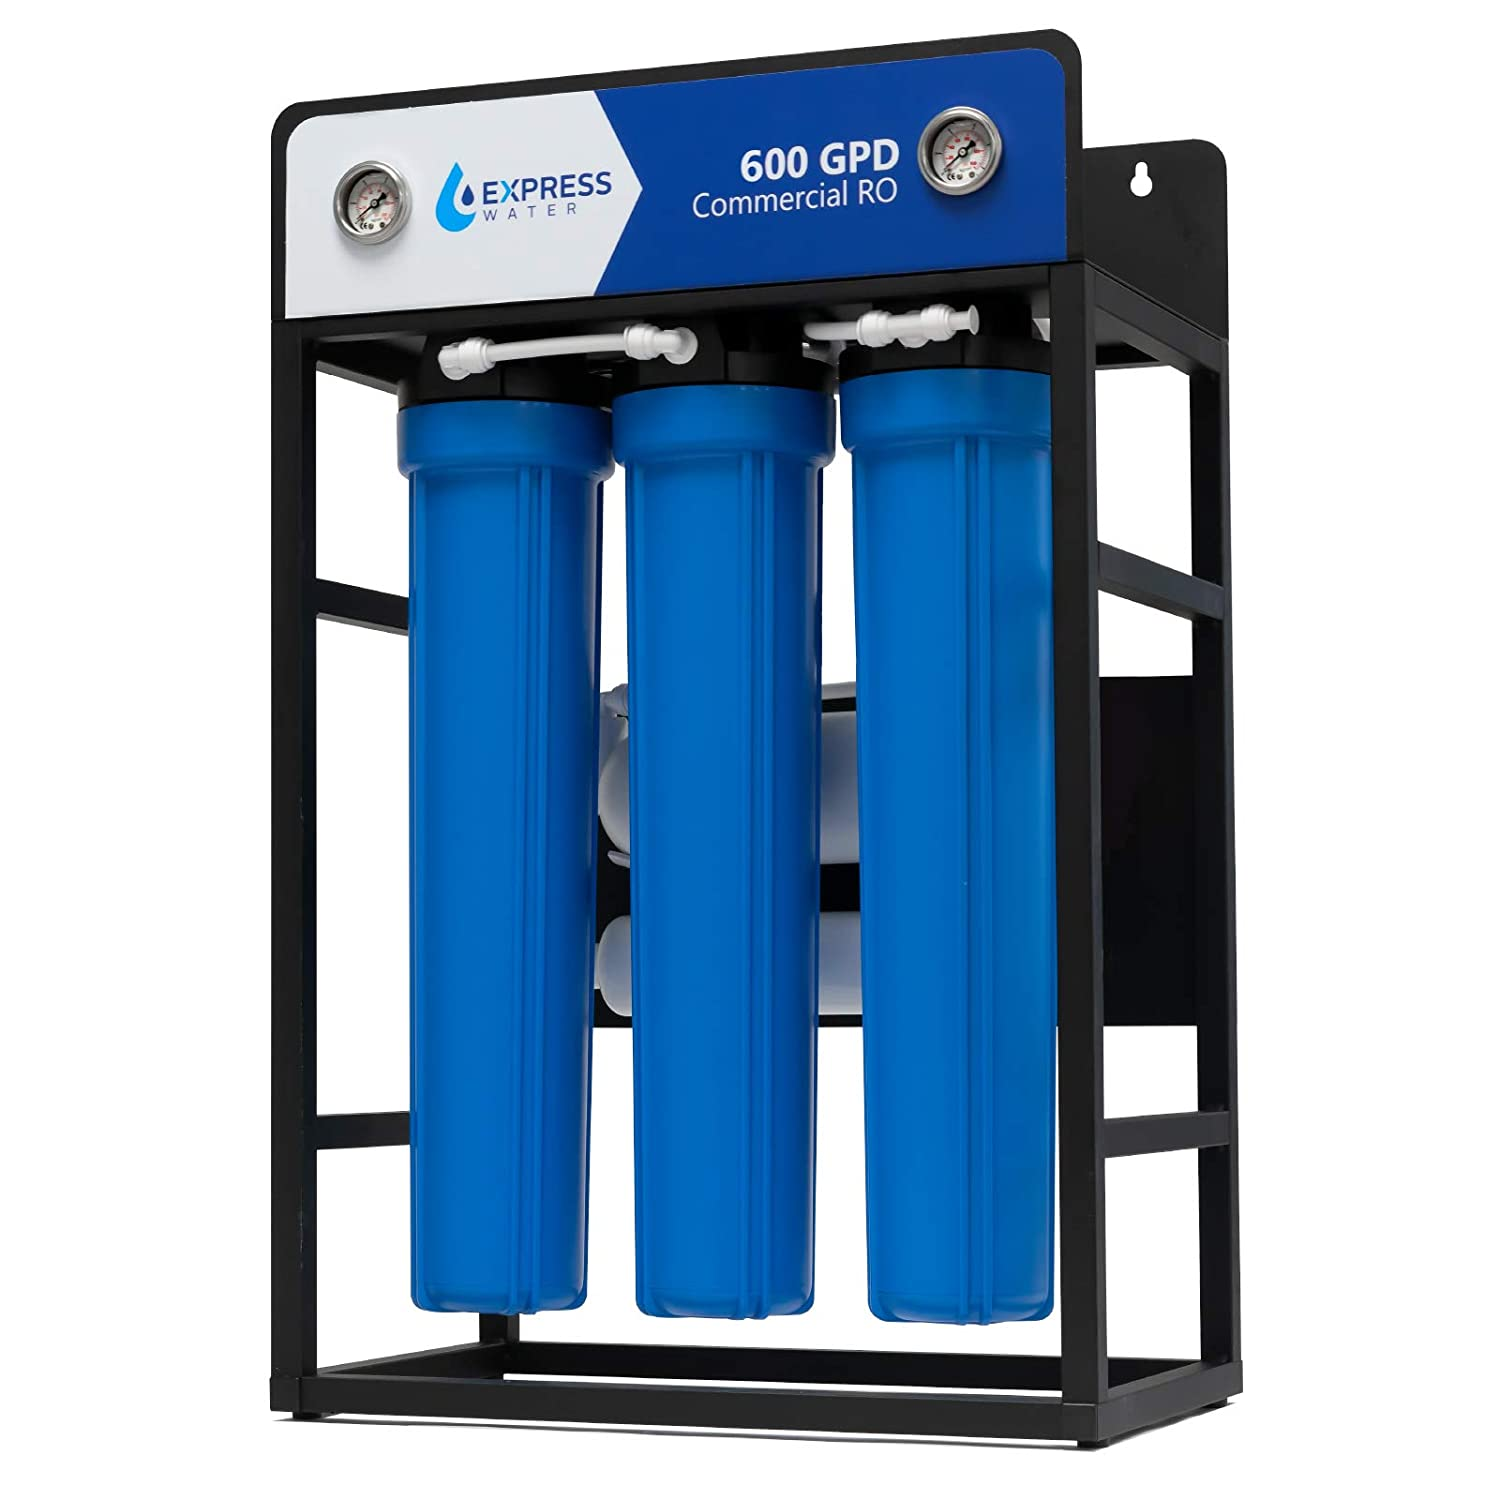 Express Water 600 GPD Commercial Reverse Osmosis Water Filtration System – 5 Stage High Capacity RO Filtration – Includes Pre-Filters, Pressure Pump, Controller, Gauges, and RO Membrane